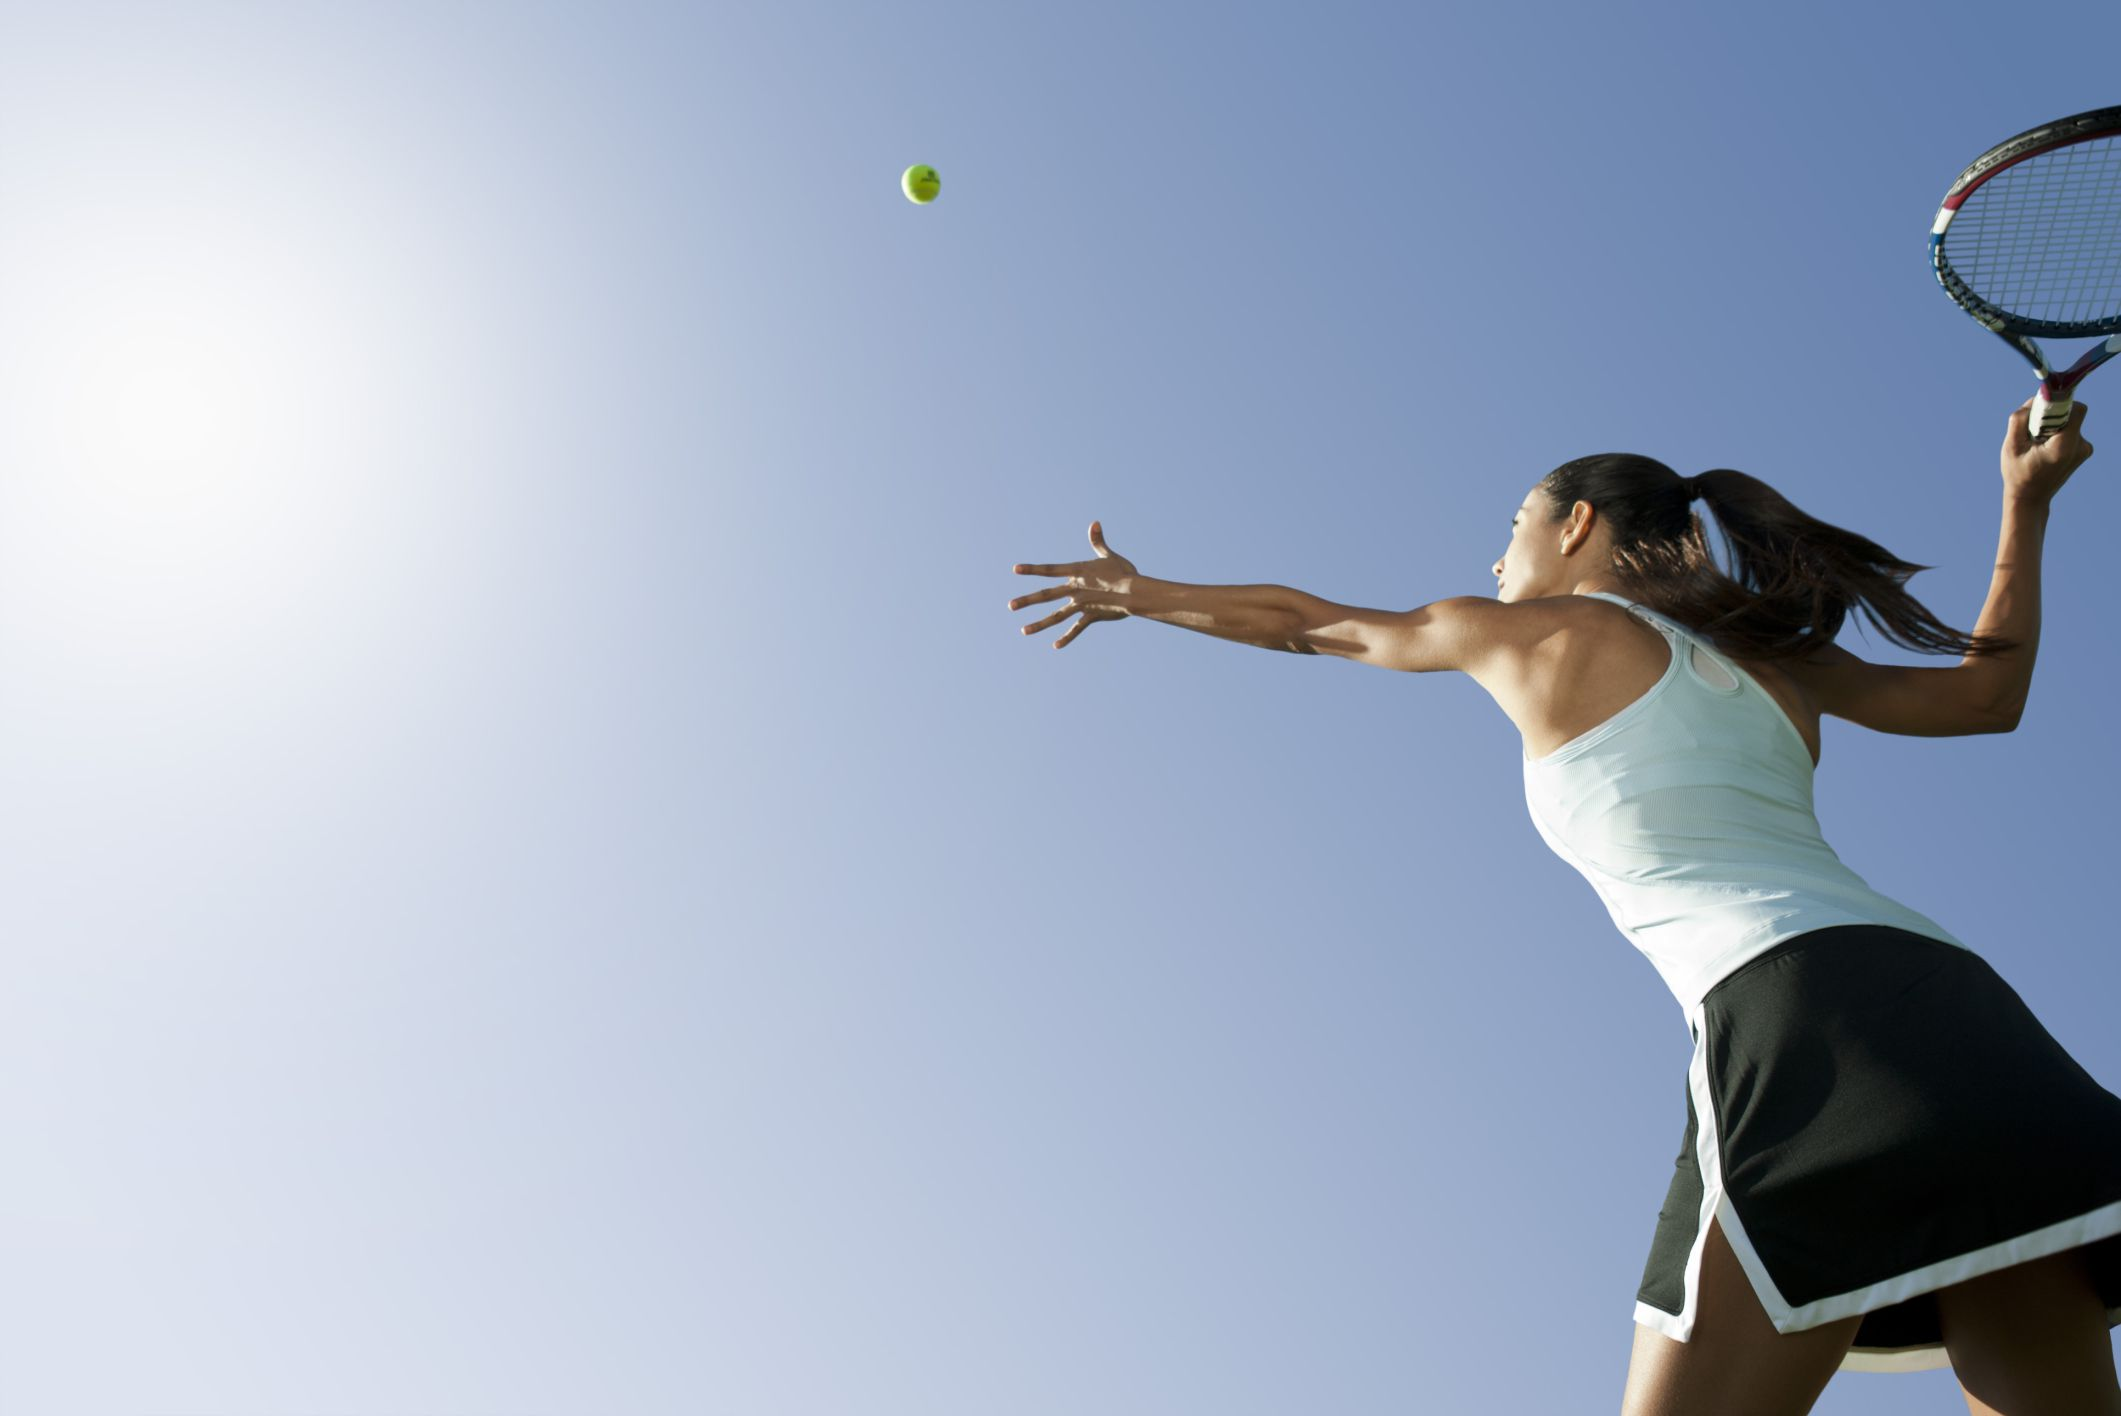 Woman throwing tennis ball in the air getting ready to serve